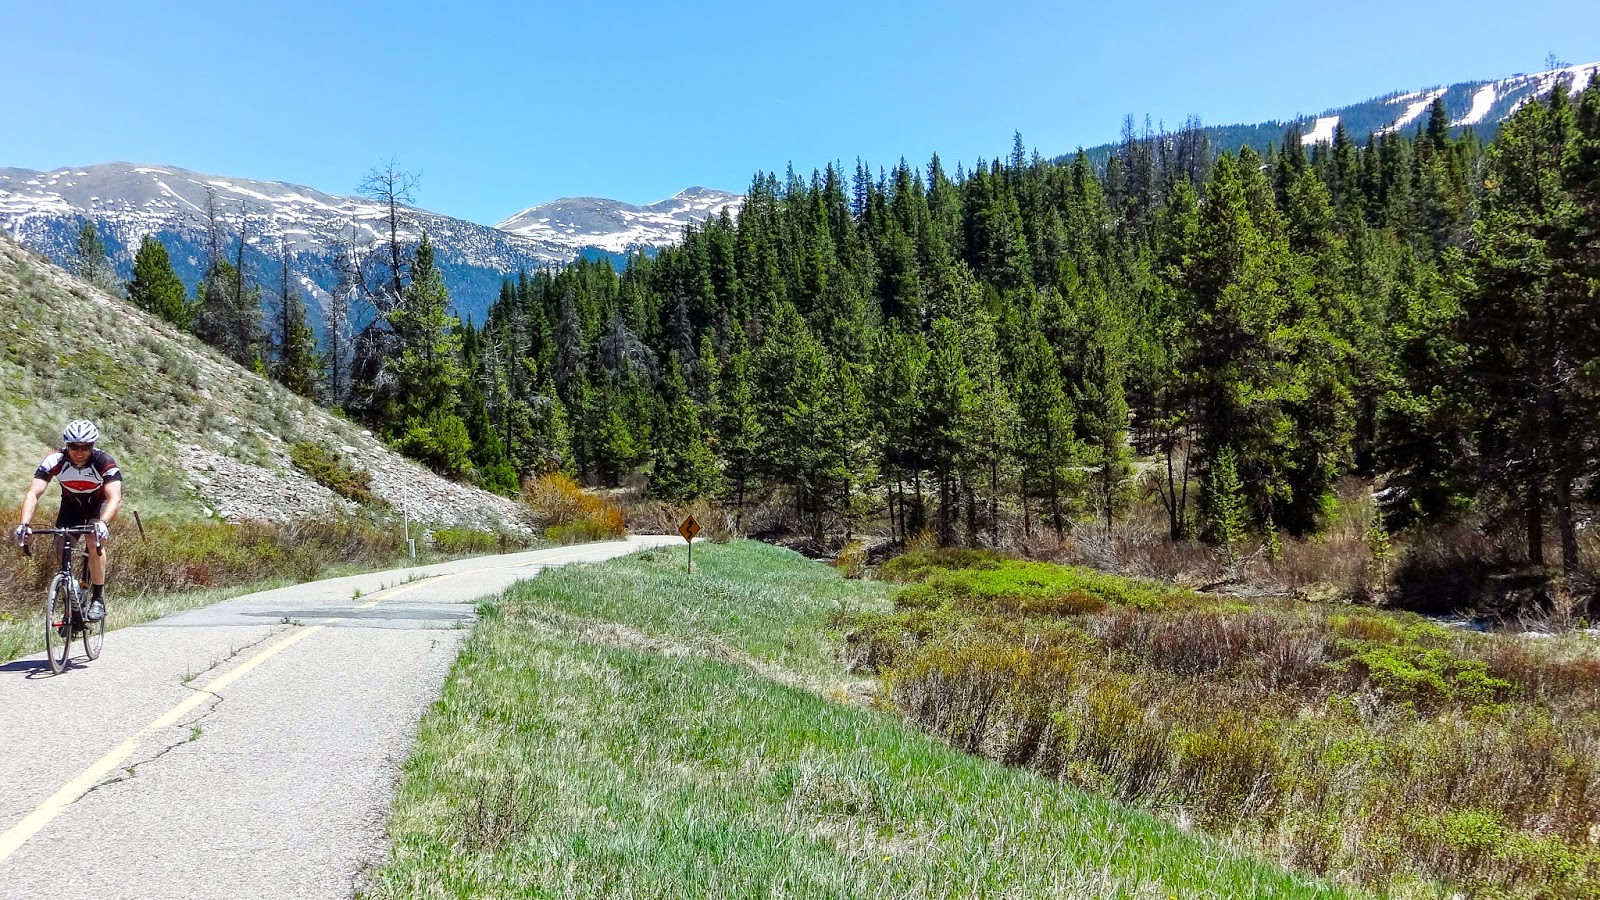 Riding a bike from Copper Mountain to Vail Pass